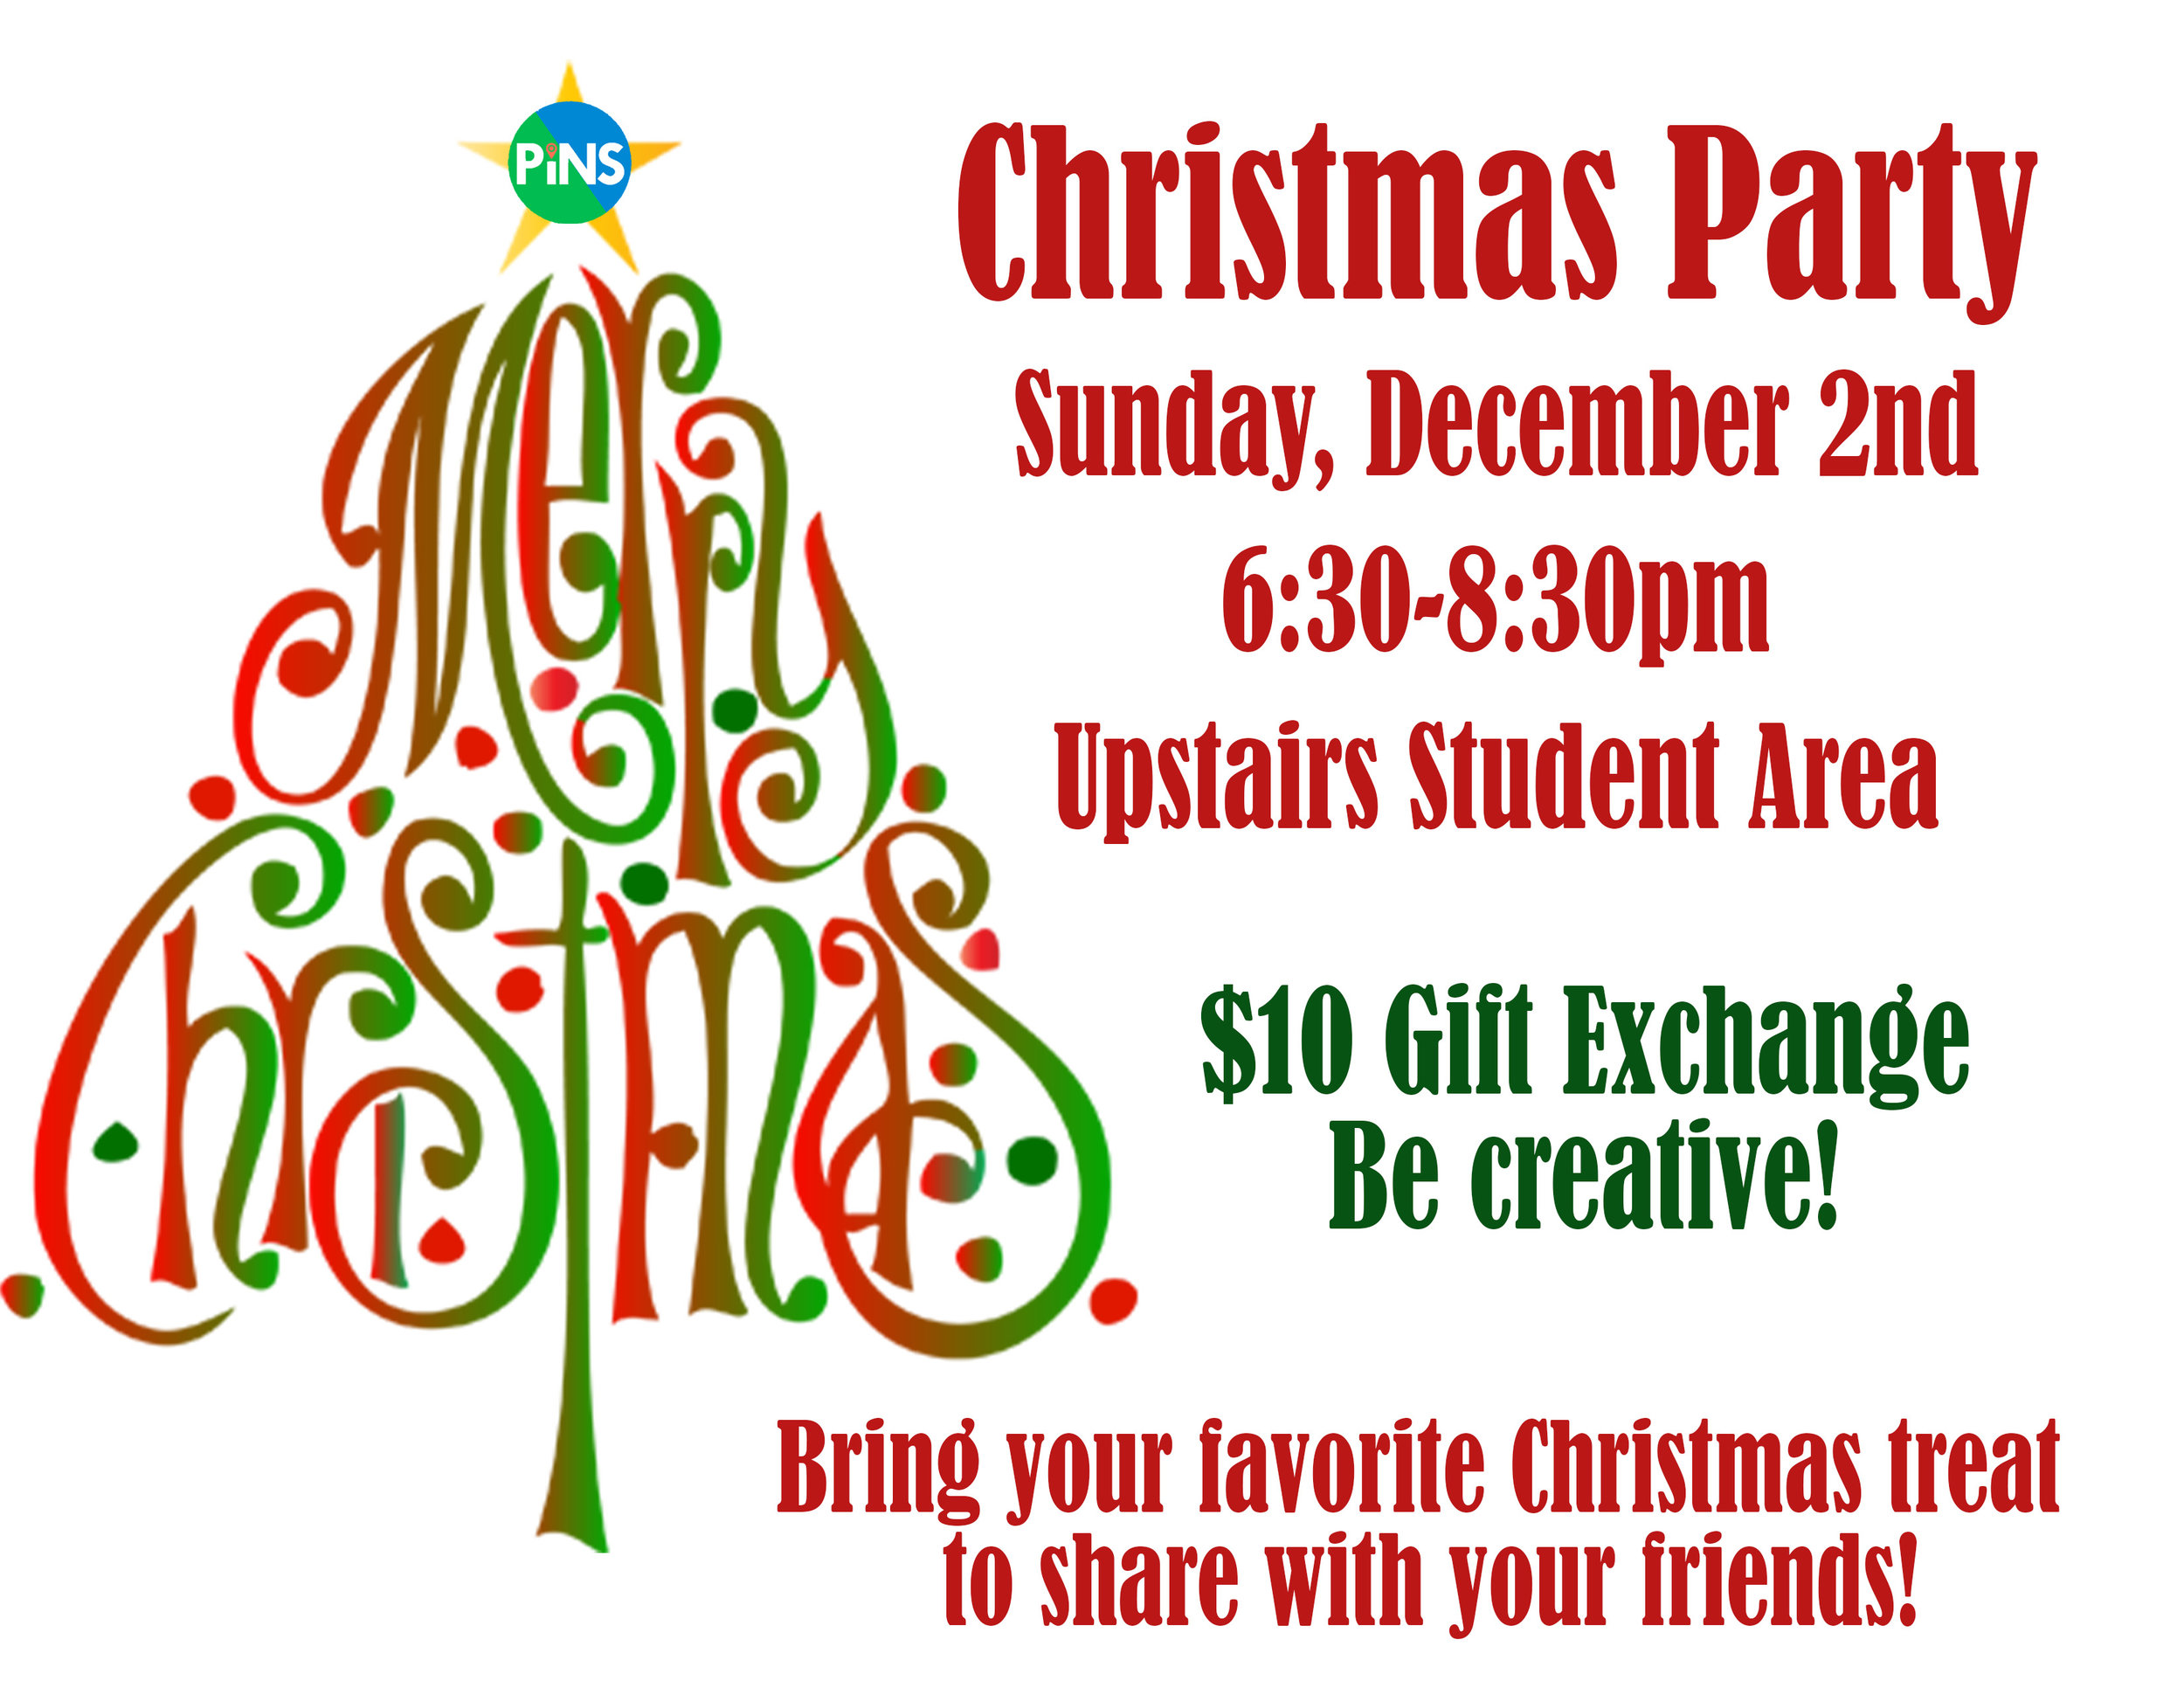 Student Christmas Party Announcement.jpg